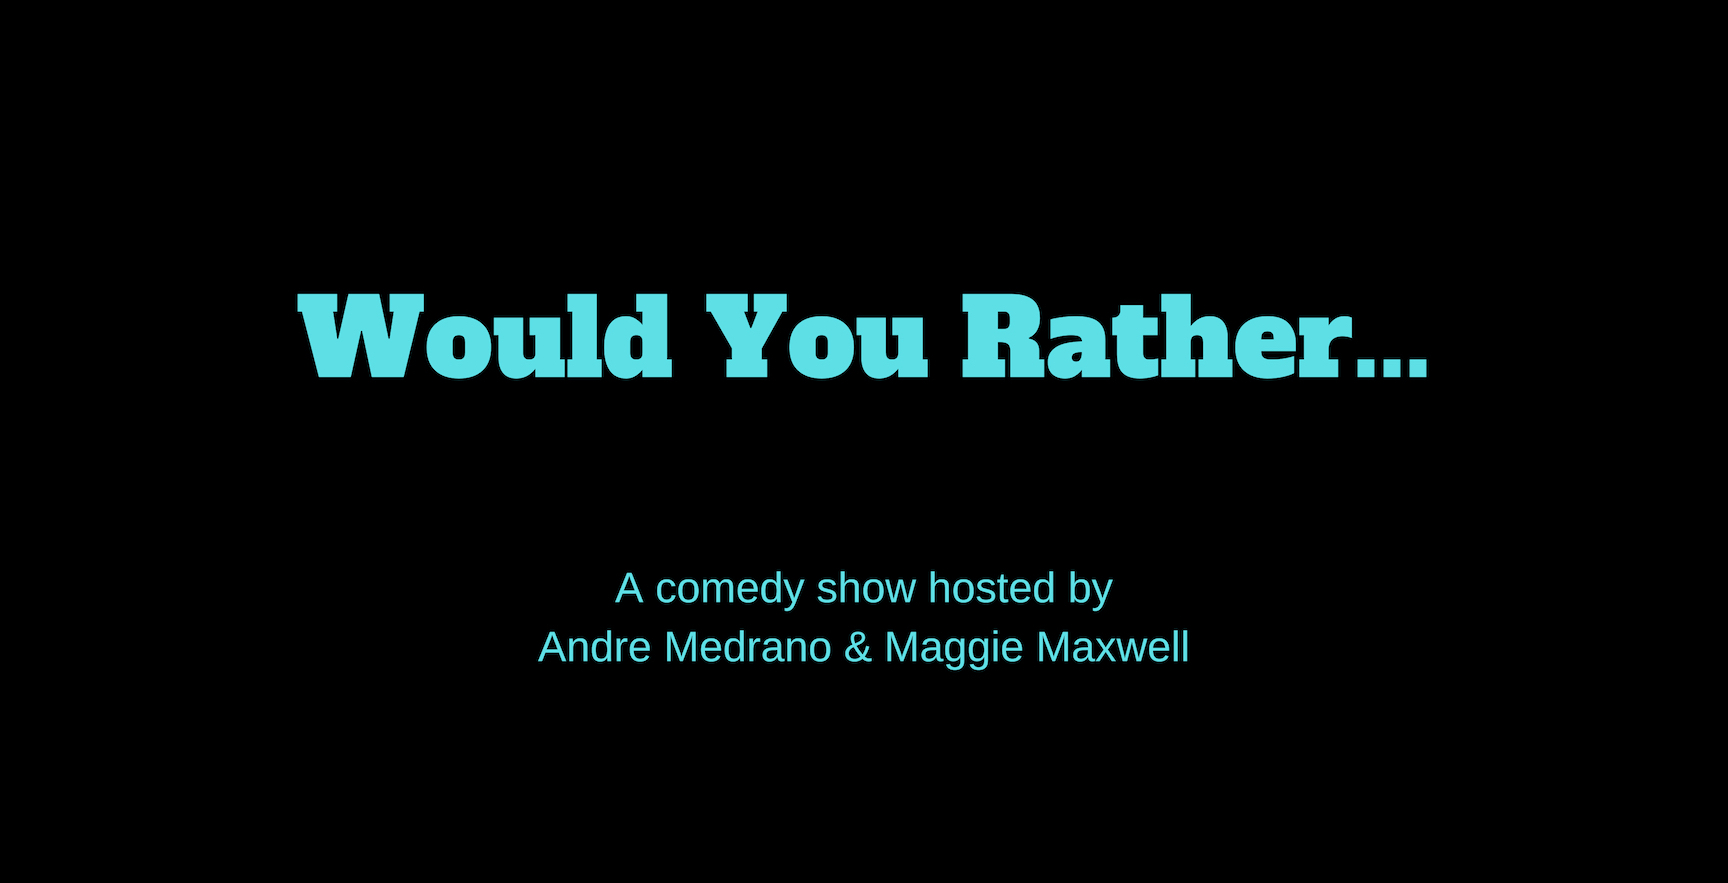 Would You Rather - a comedy show